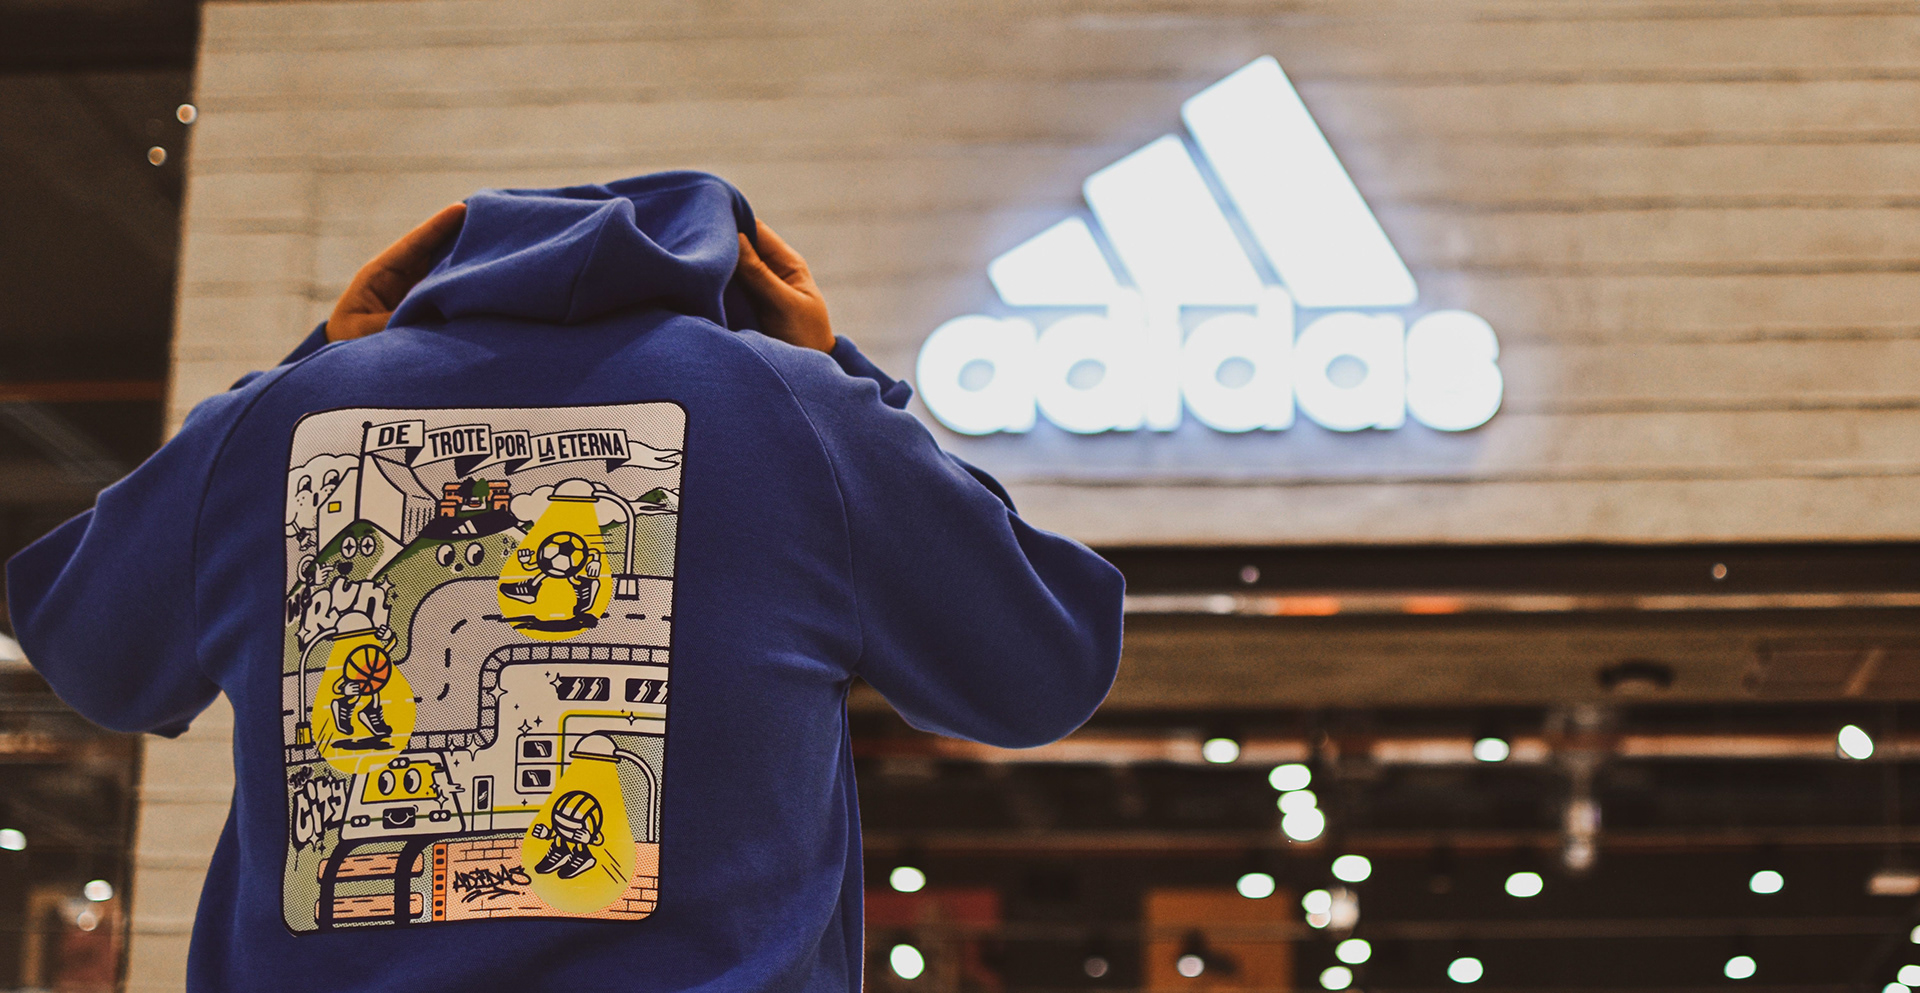 Adidas Colombia New Official Merchandise of Medellín City Designed by Nicof Maya